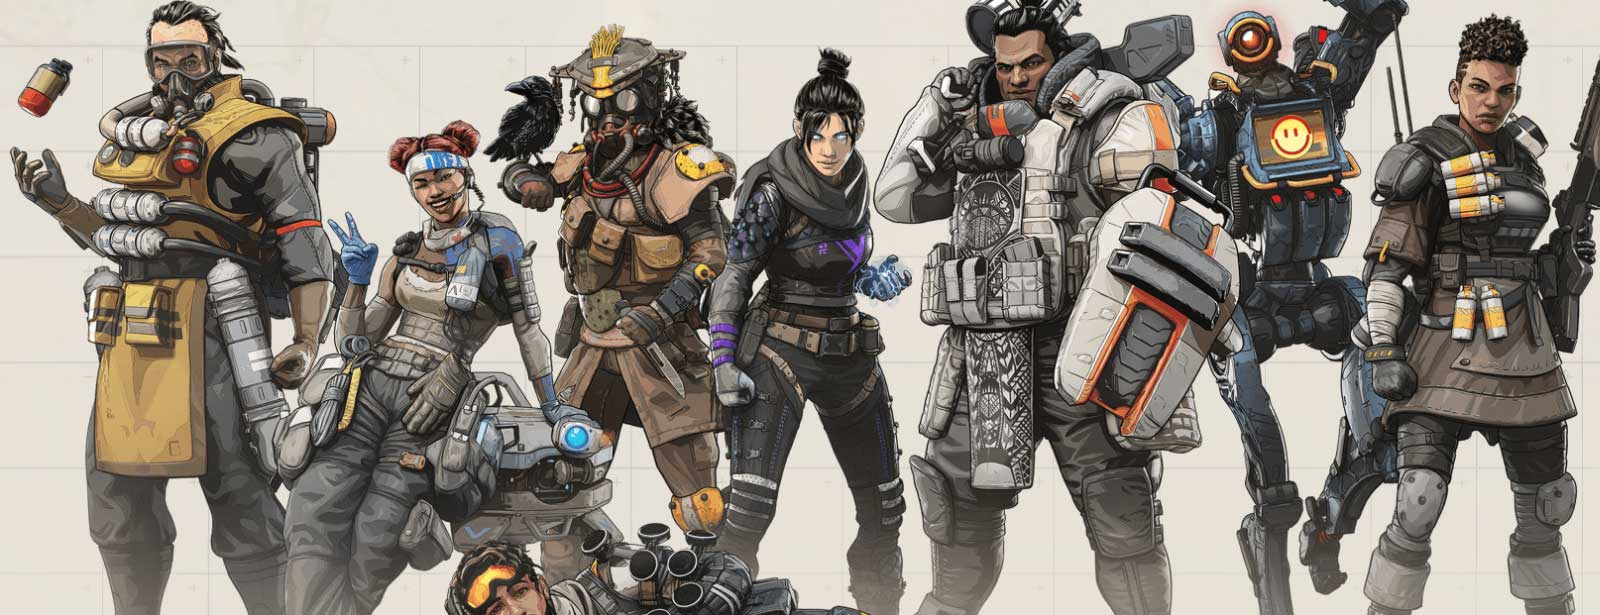 Best Settings for Apex Legends - Optimize Performance (August 2019)